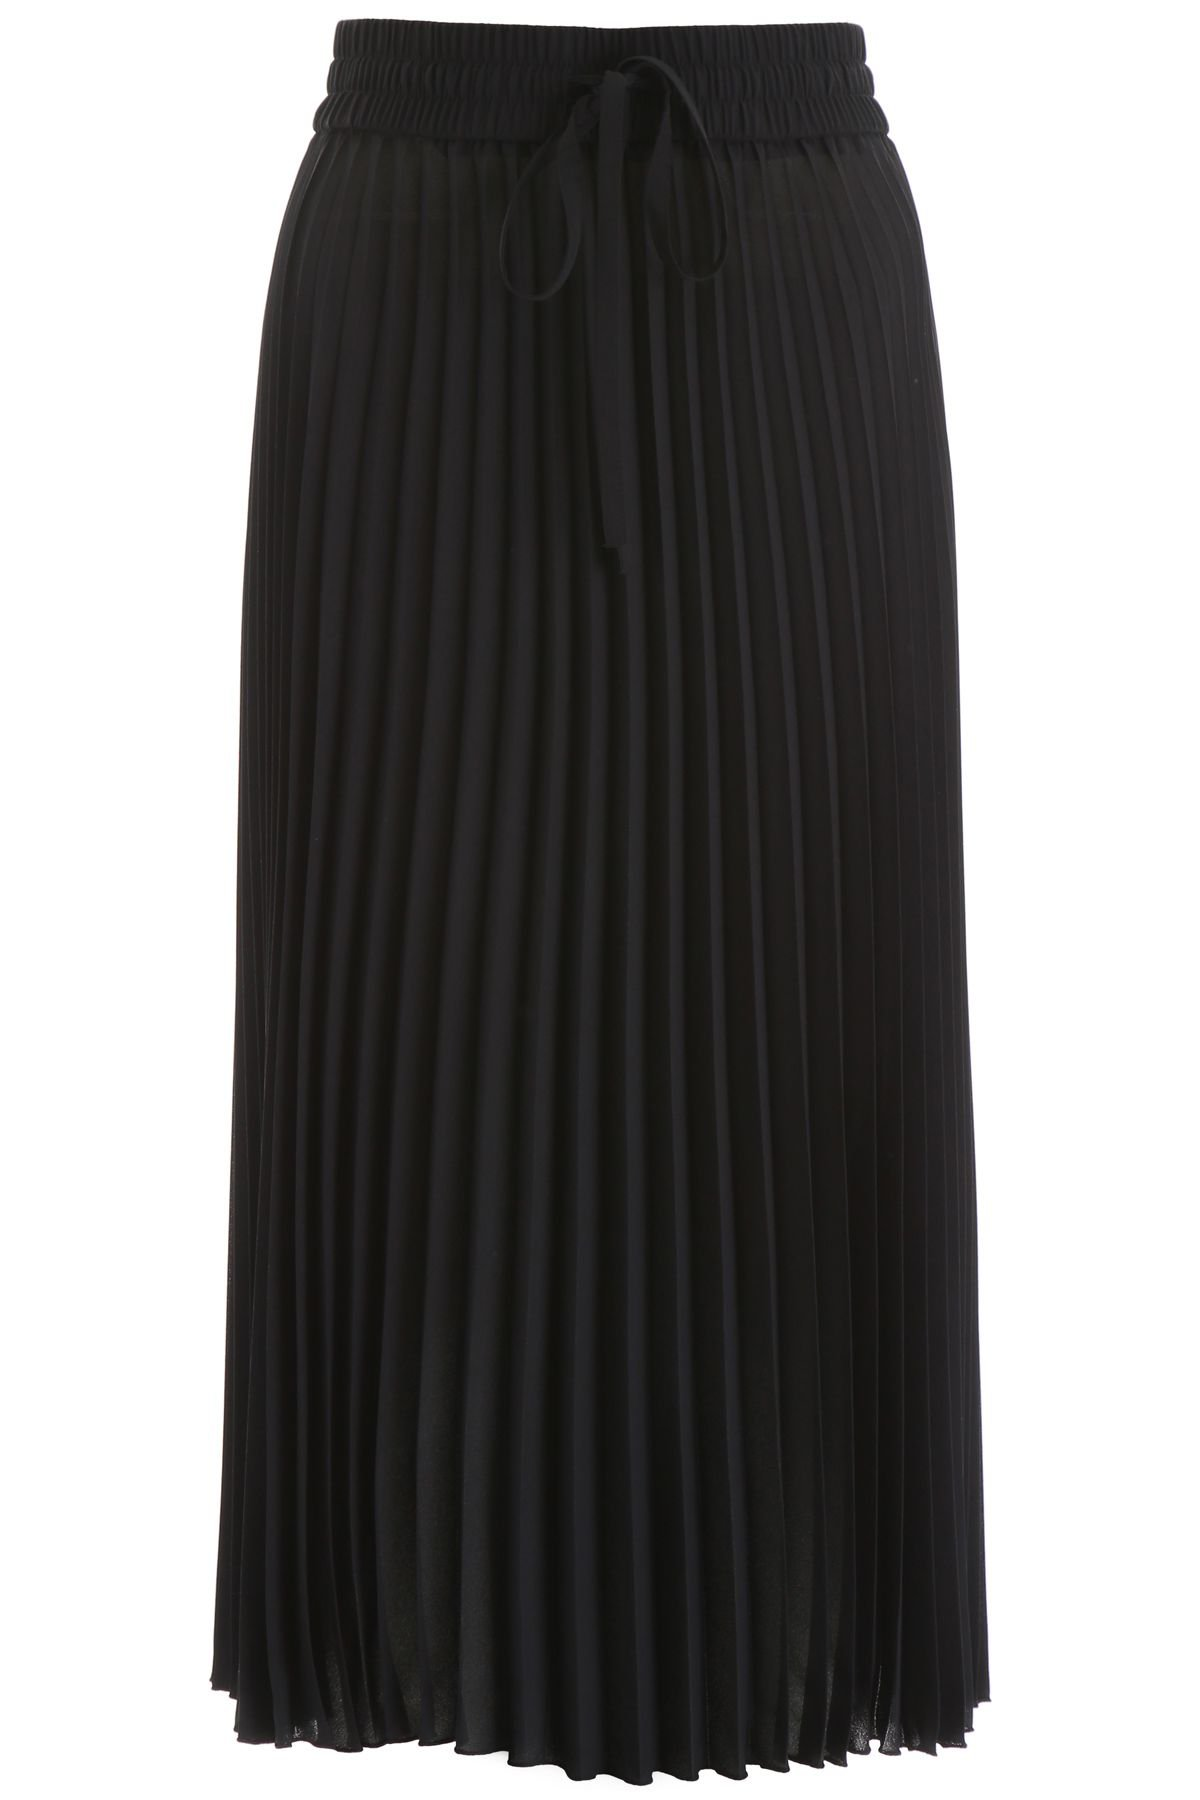 RED Valentino Pleated Midi Skirt